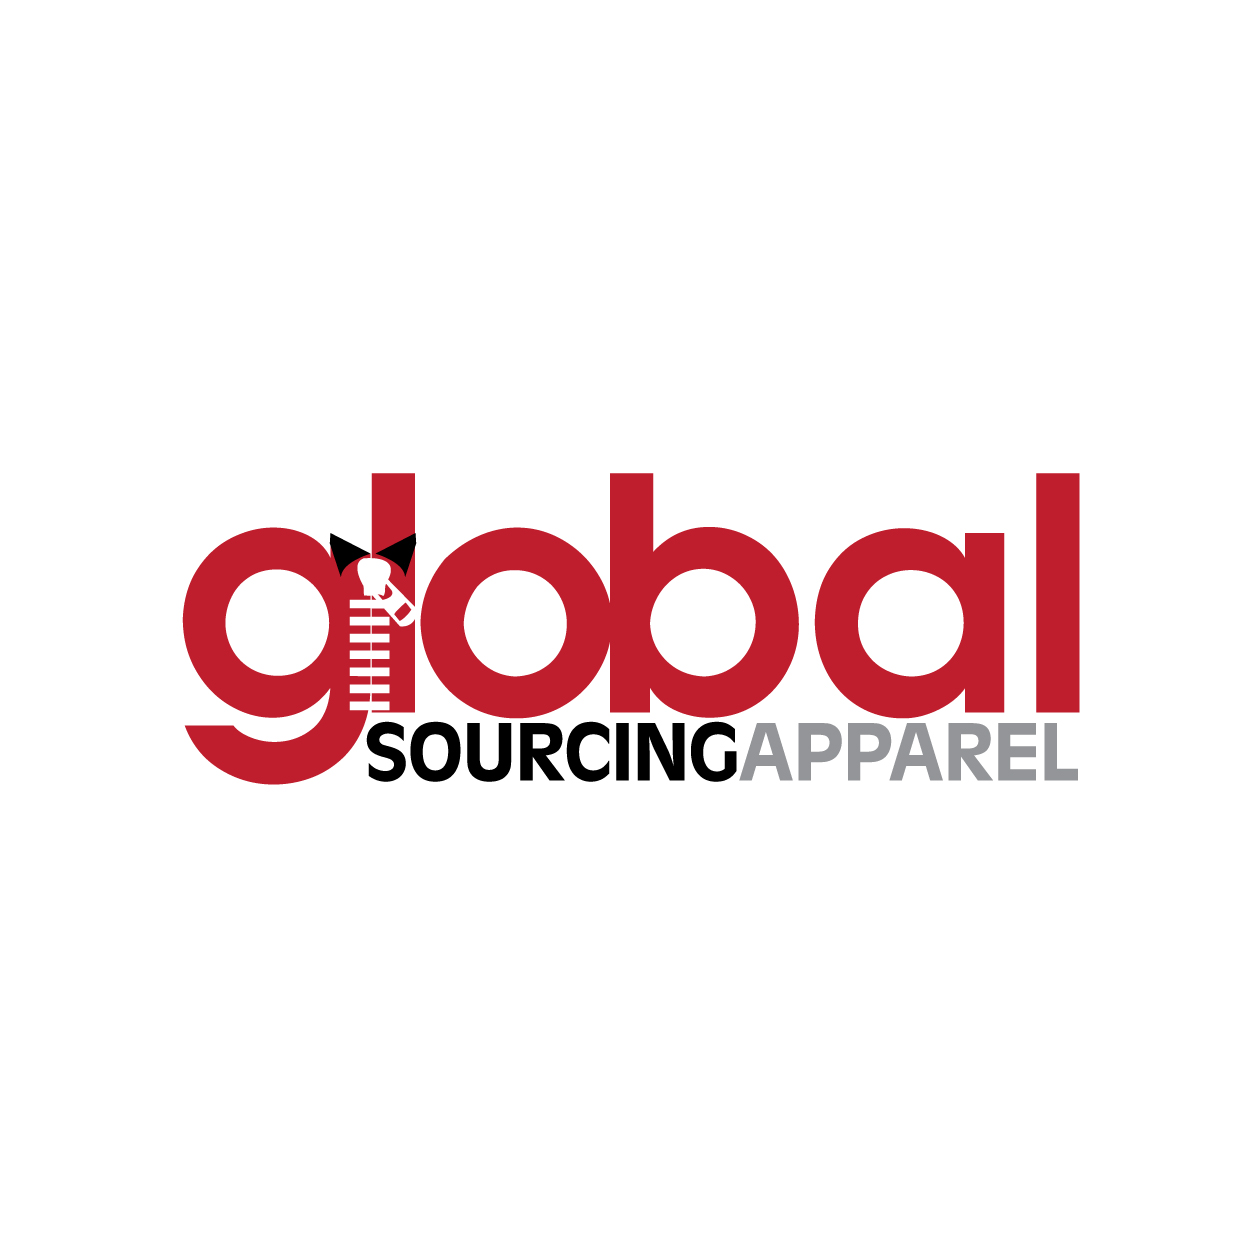 Logo Design by stormbighit - Entry No. 68 in the Logo Design Contest Fun Logo Design for Global Sourcing Apparel.